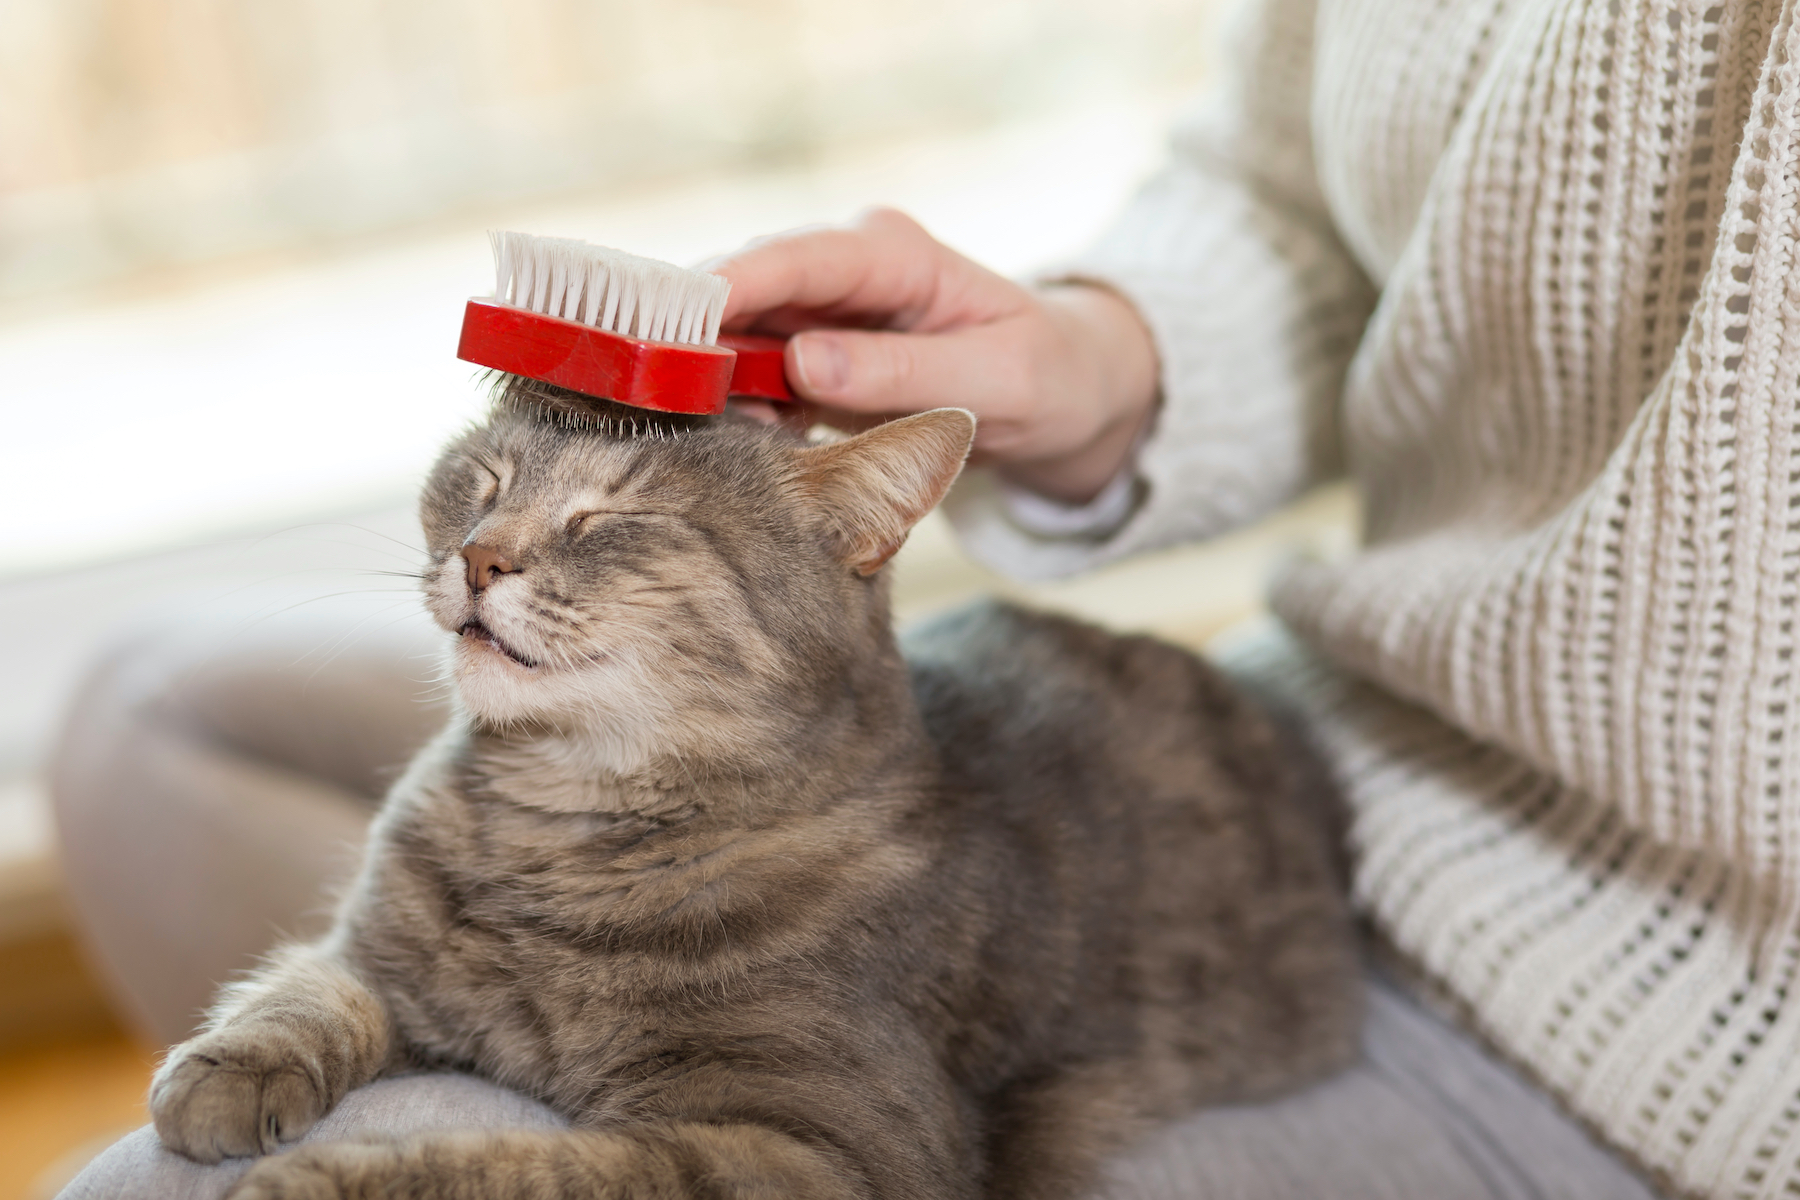 Canva - Cat brushing